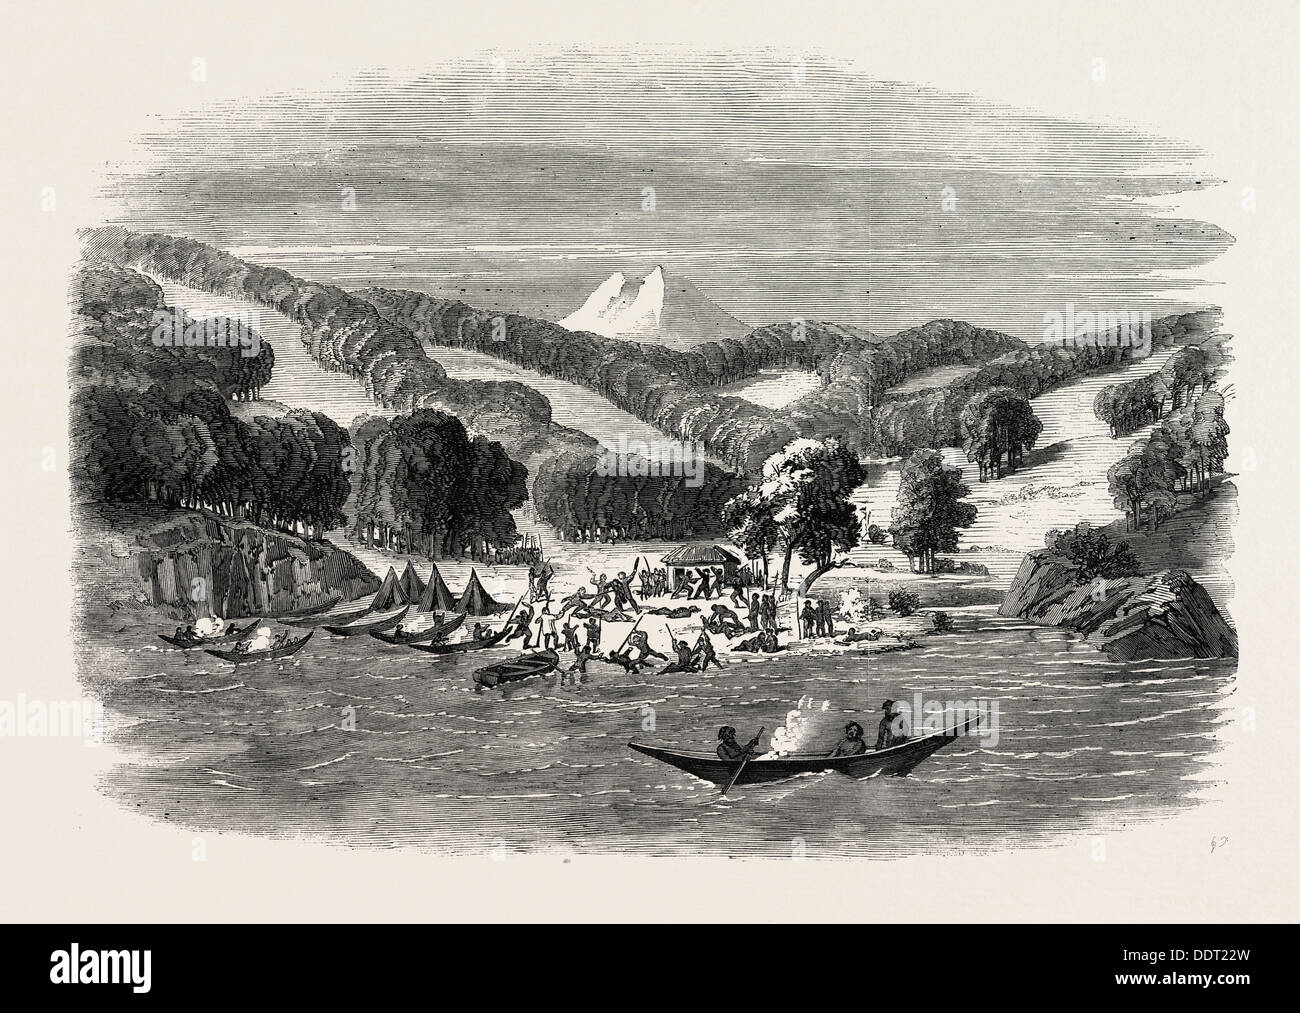 MASSACRE OF A MISSION PARTY OF THE ALAN GARDINER BY THE NATIVES AT WOOLYA, TIERRA DEL FUEGO, 1860 engraving - Stock Image